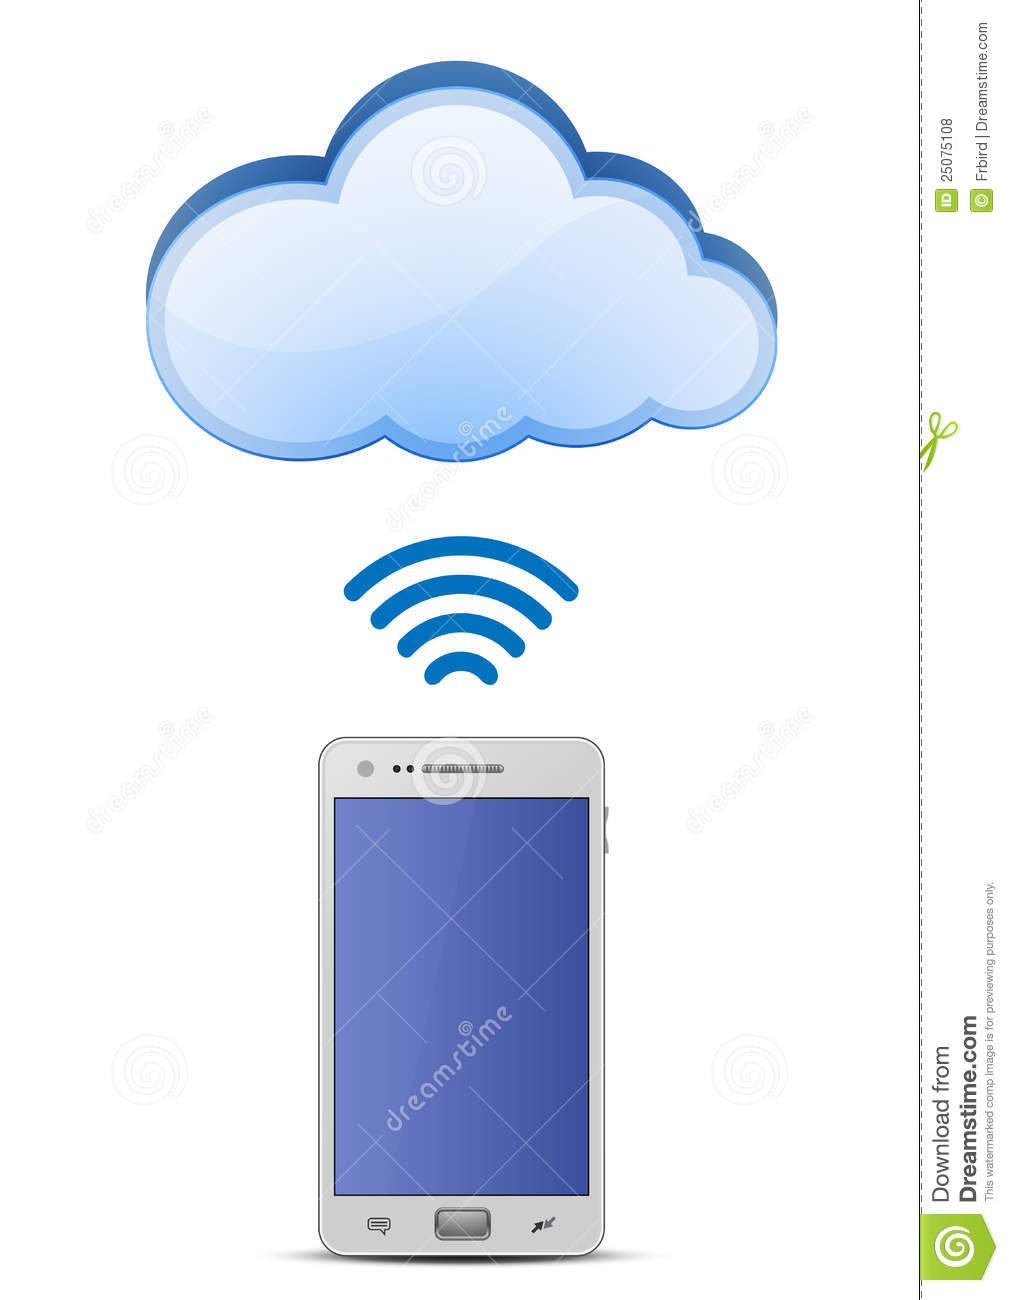 how to connect phone to nbn wireless network